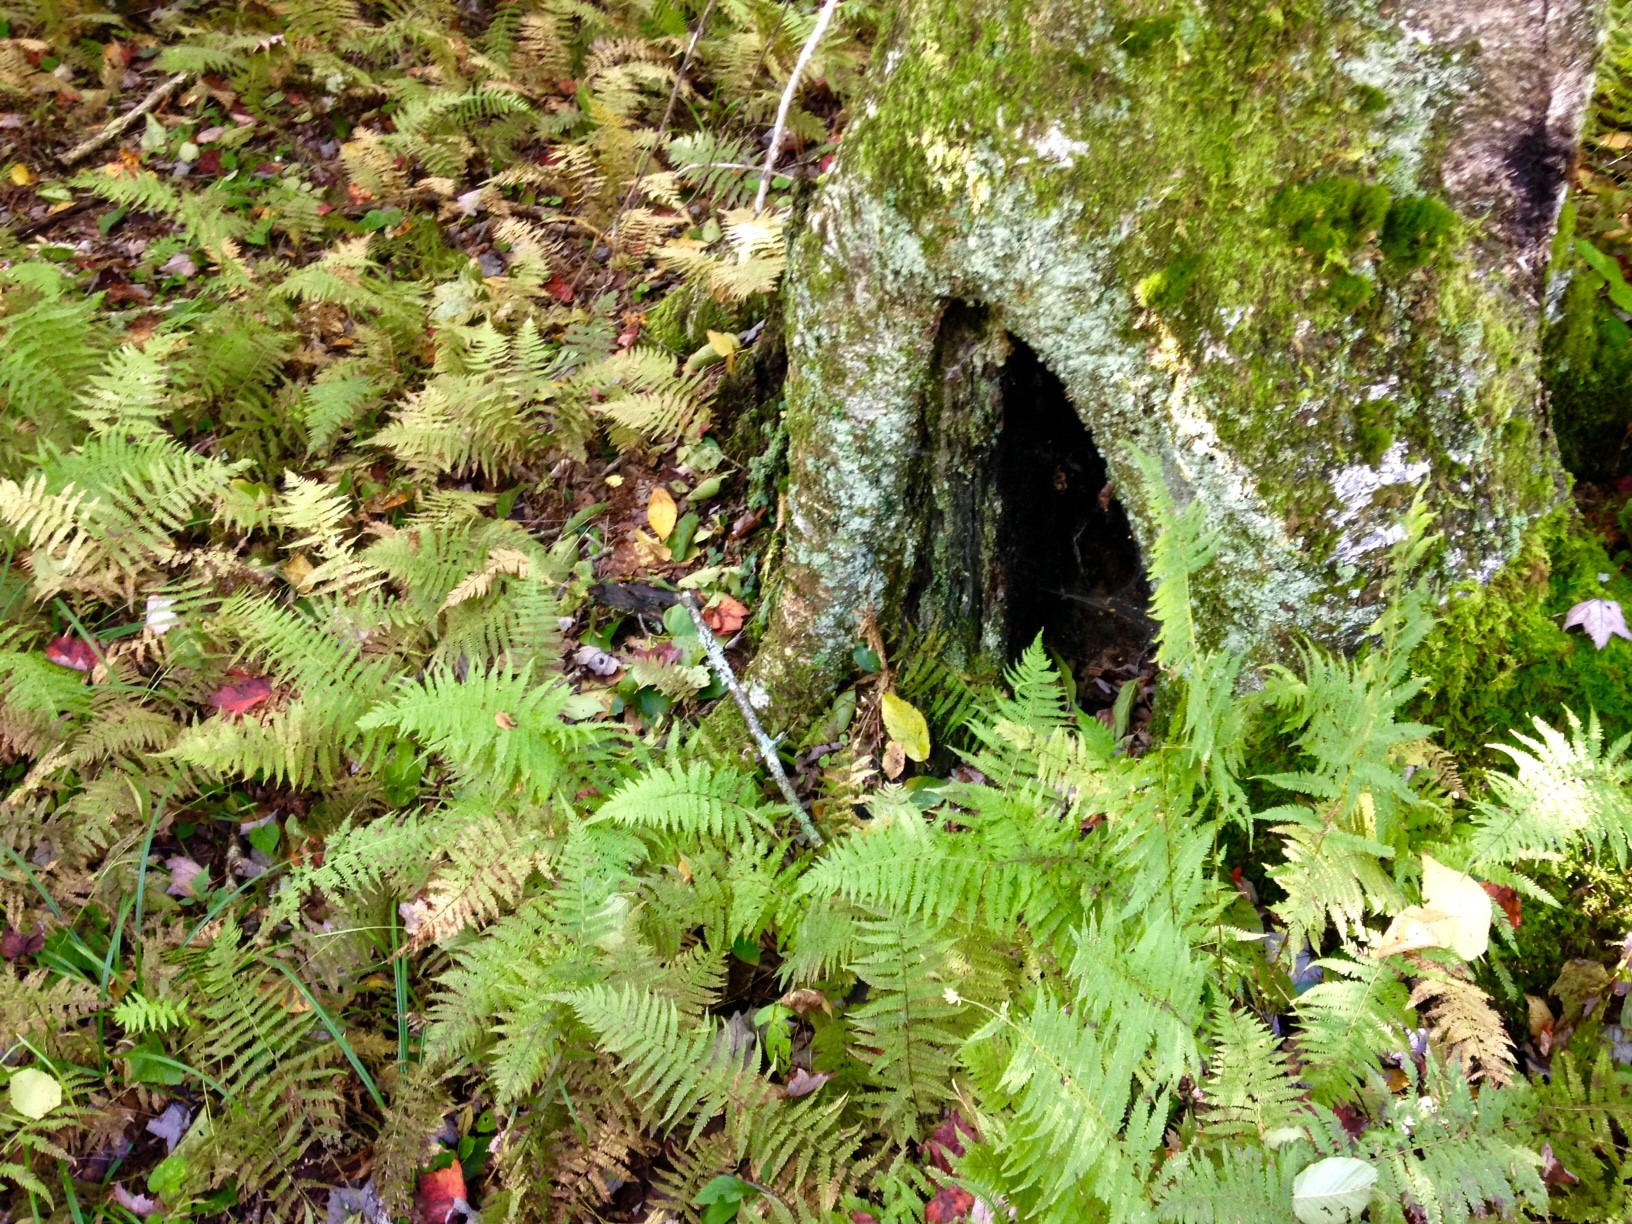 hollow tree with ferns